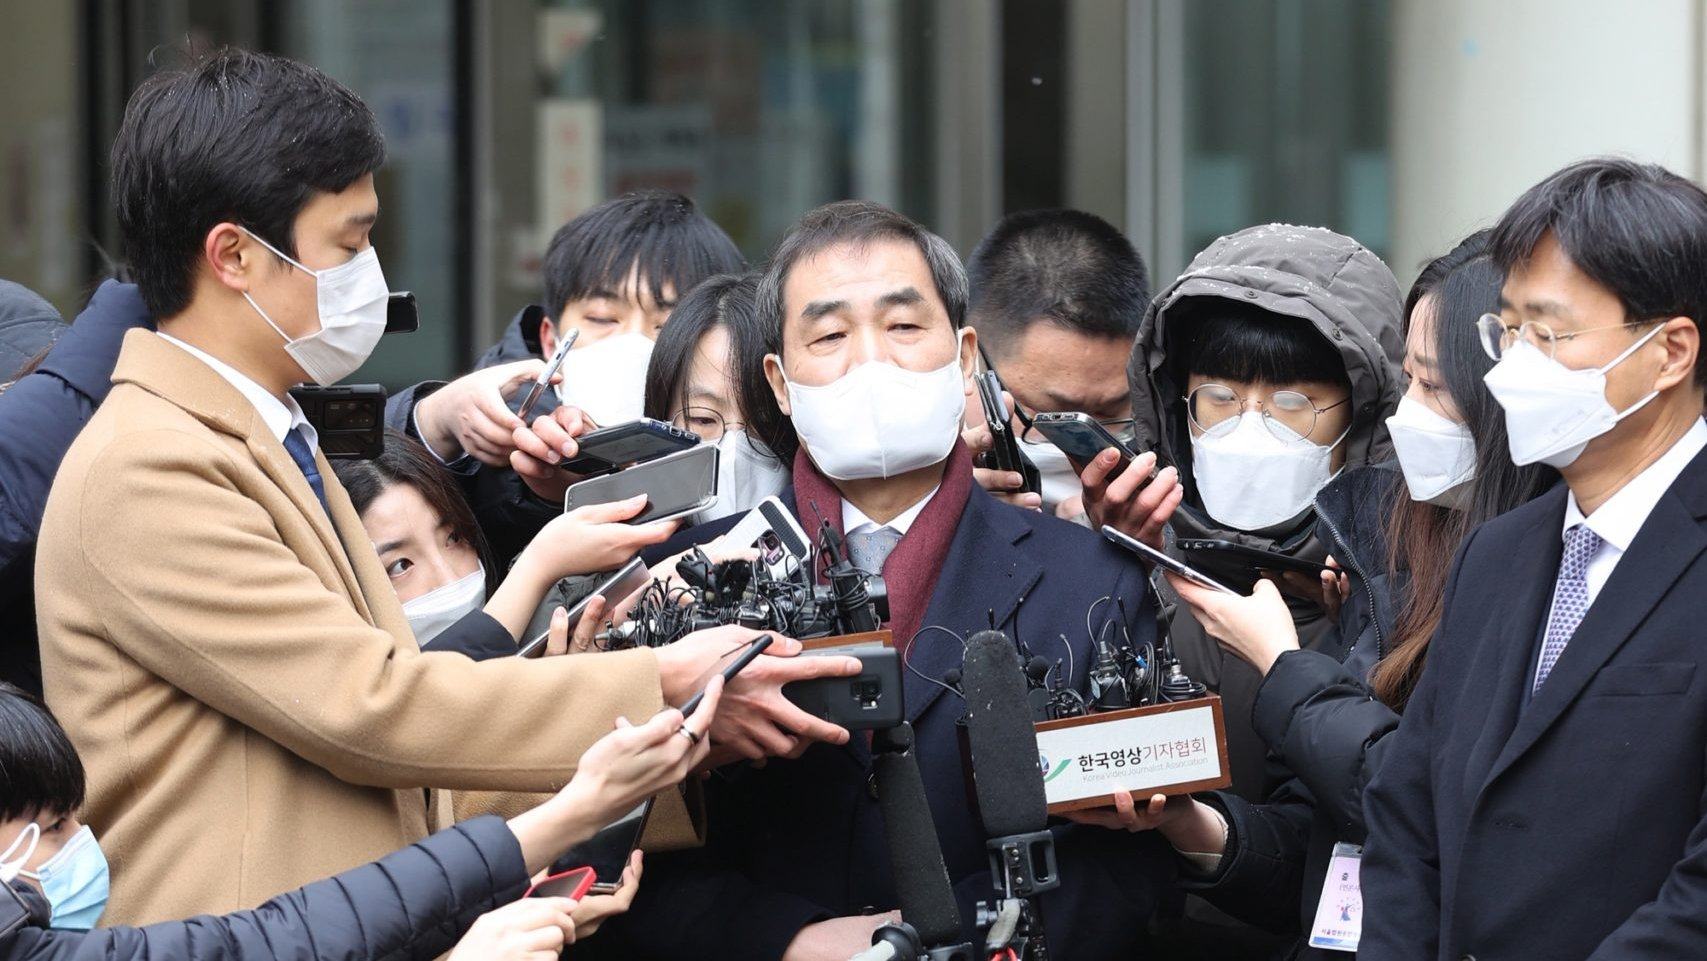 epa08945237 Lee In-jae (C), a lawyer for Samsung Electronics Co. Vice Chairman Lee Jae-yong, speaks to reporters at the Seoul High Court in Seoul, South Korea, 18 January 2021, after the Samsung Group heir was sentenced to two years and six months in prison over bribes to former President Park Geun-hye and her longtime friend, Choi Soon-sil, and taken into custody immediately after the ruling. In August 2019, the Supreme Court ordered the appellate court to review its suspended jail sentence for Lee over the scandal.  EPA/YONHAP SOUTH KOREA OUT